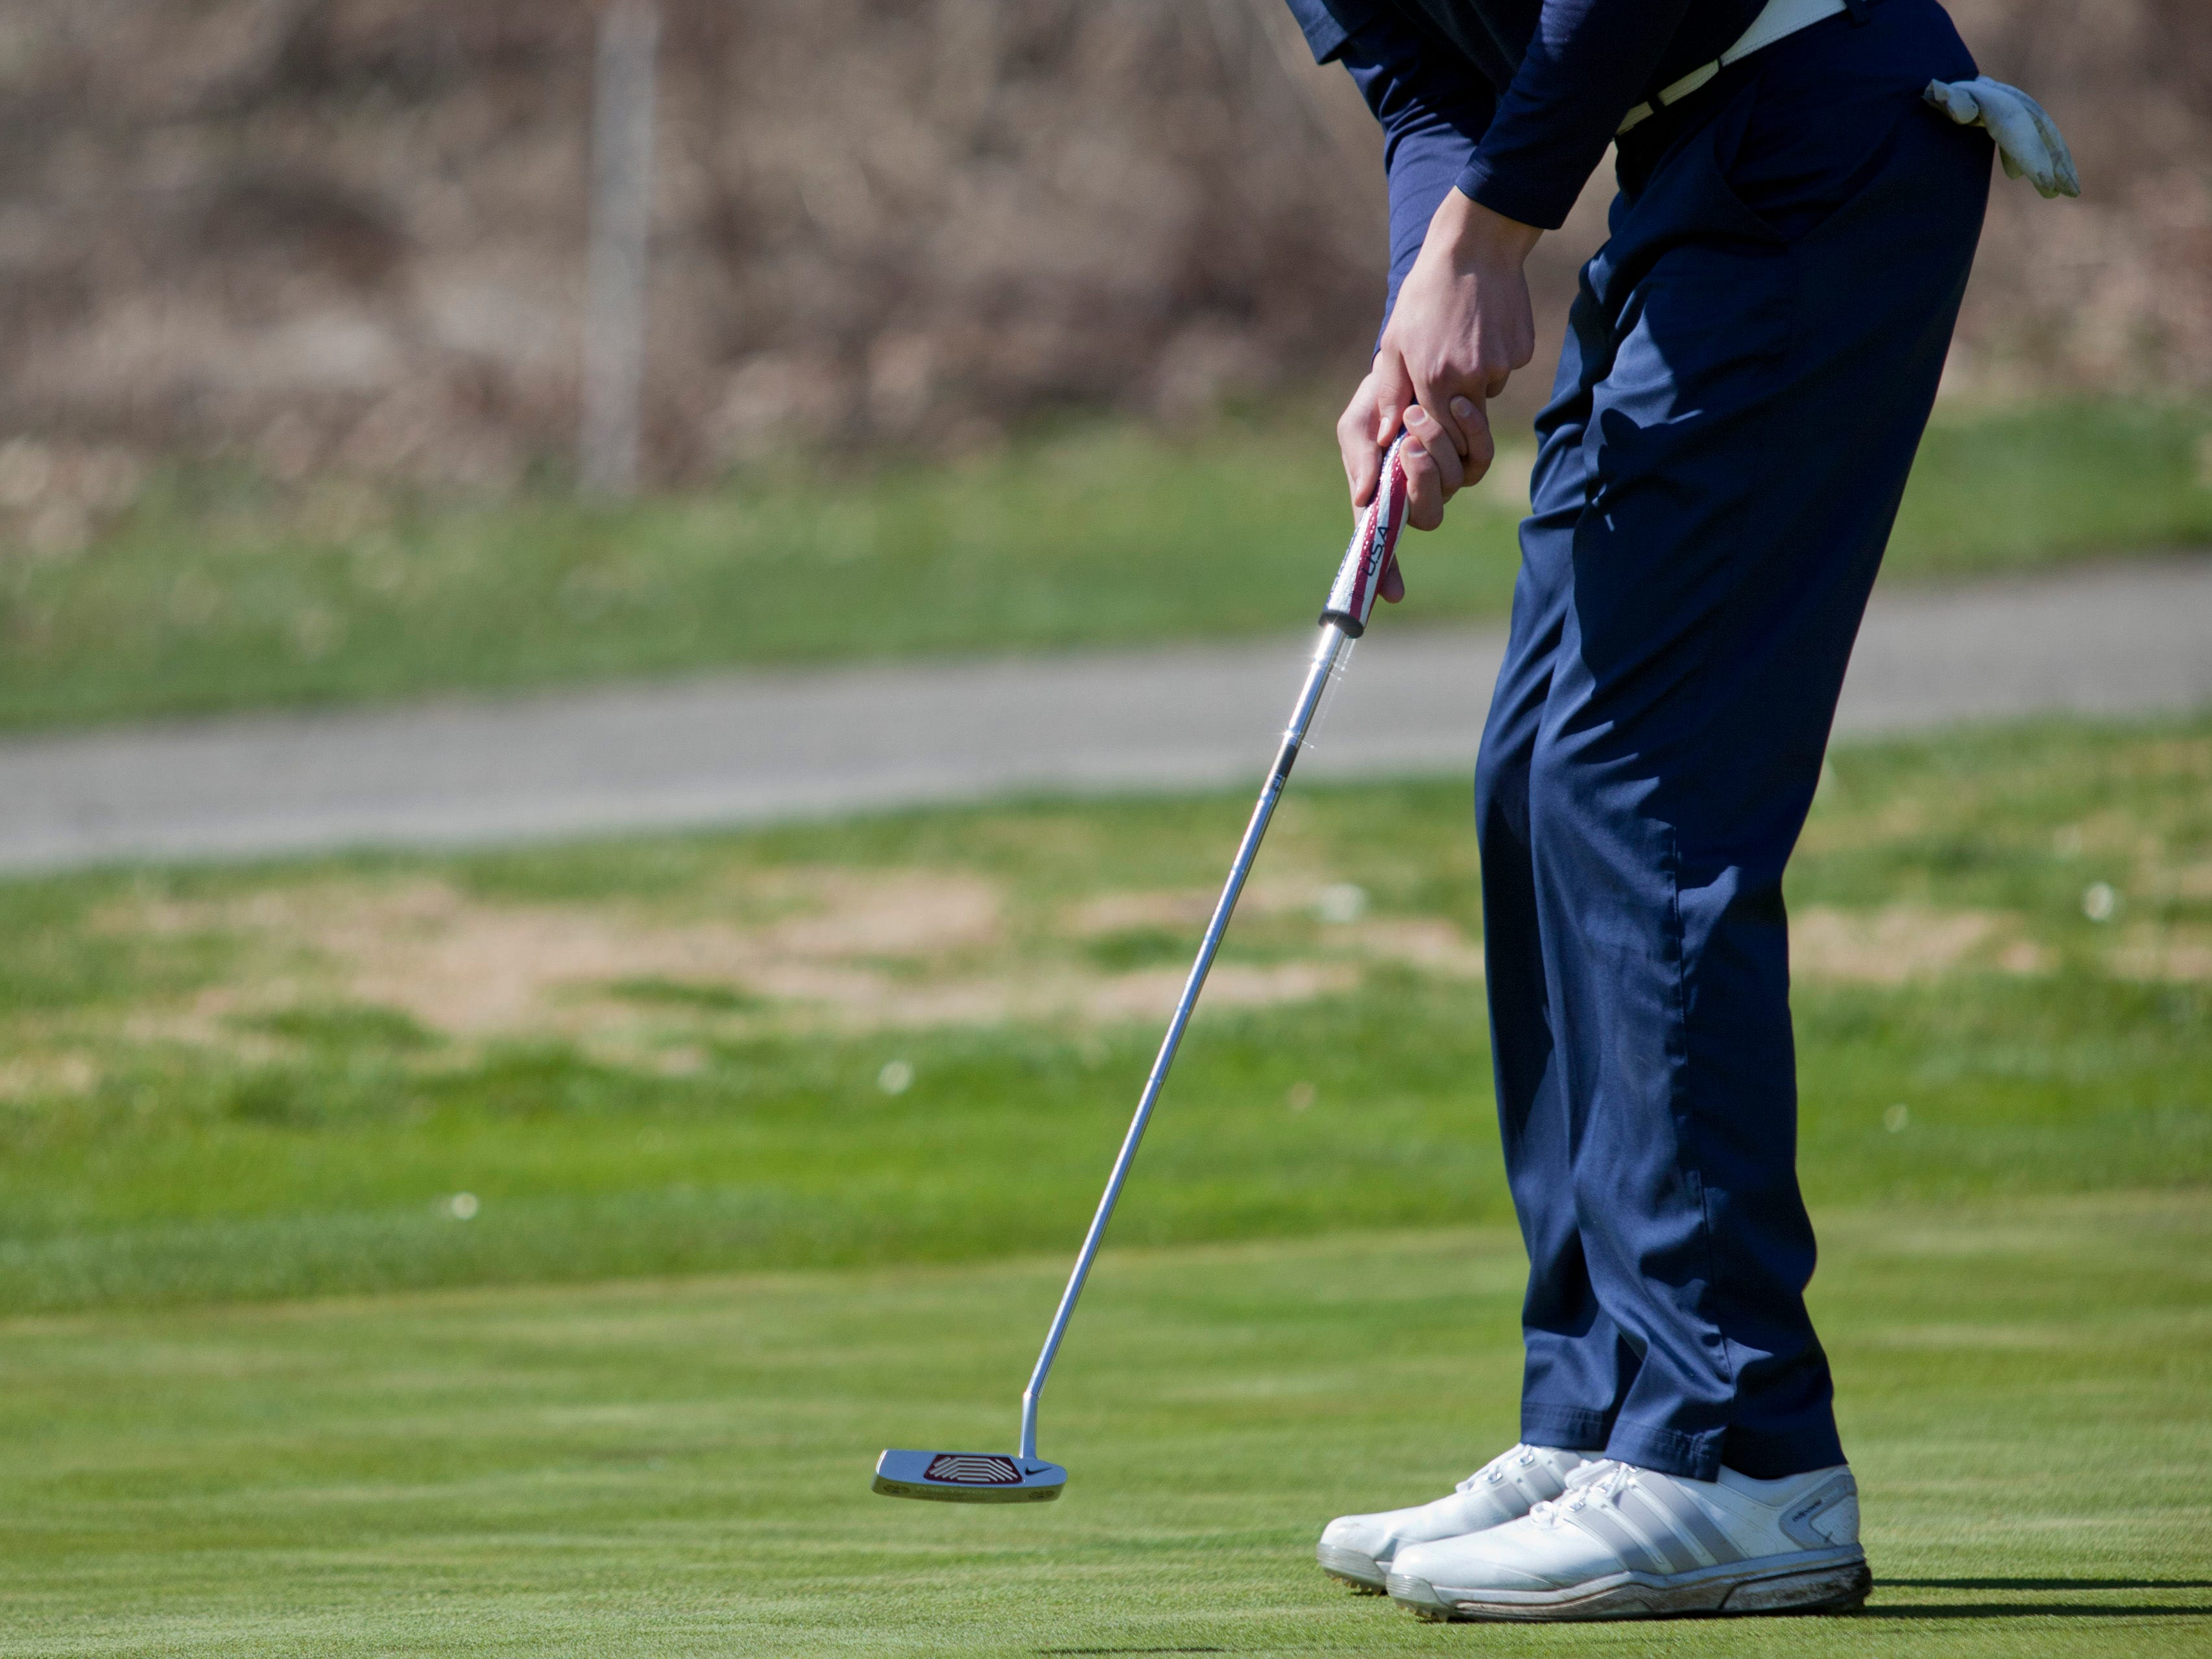 Marysville junior Nick Lozano, 16, takes a putt Friday, April 17, 2015 at the Port Huron Elks Golf Club in Port Huron Township.